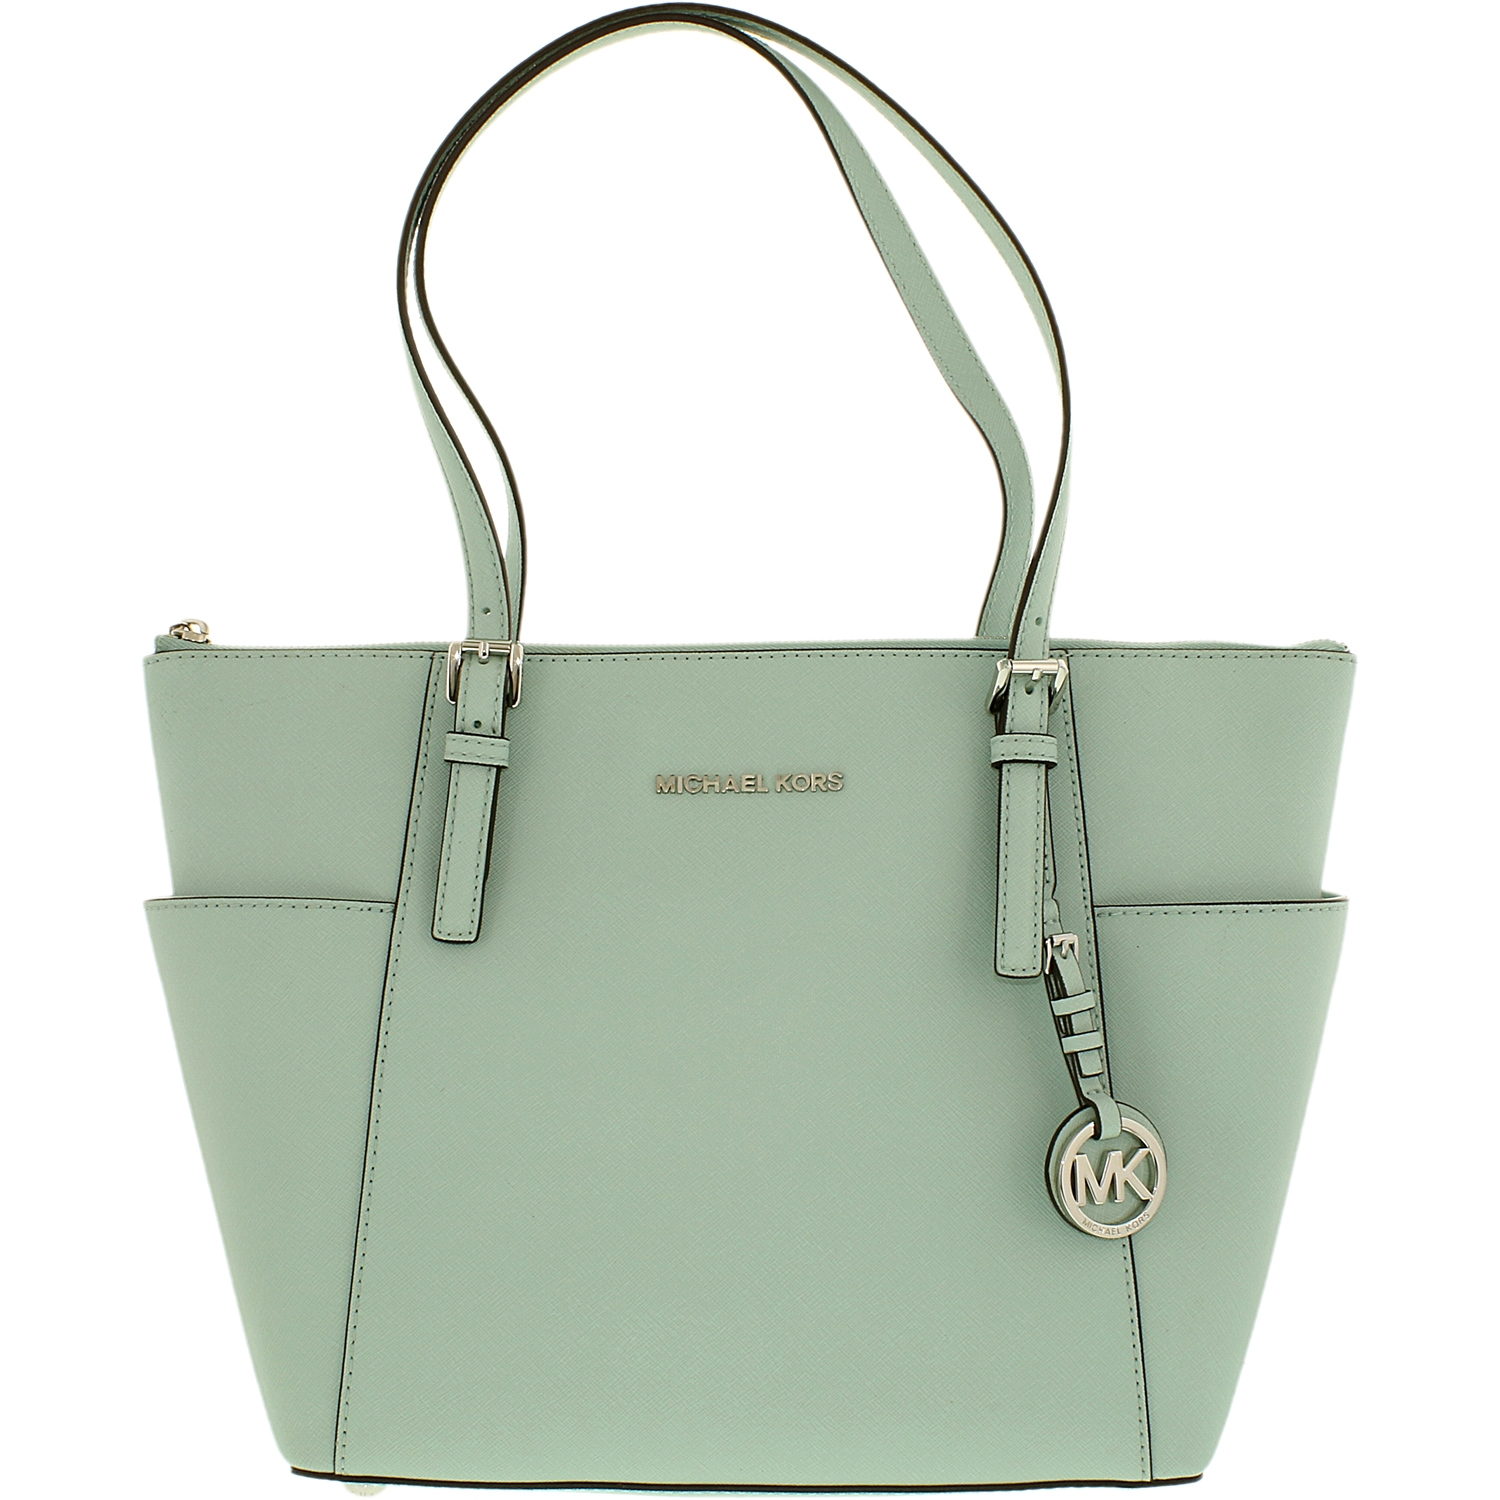 7df3e80e03788a Michael Kors - Women's Jet Set Top Zip Saffiano Leather Top-Handle Bag Tote  - Celadon Green - Walmart.com